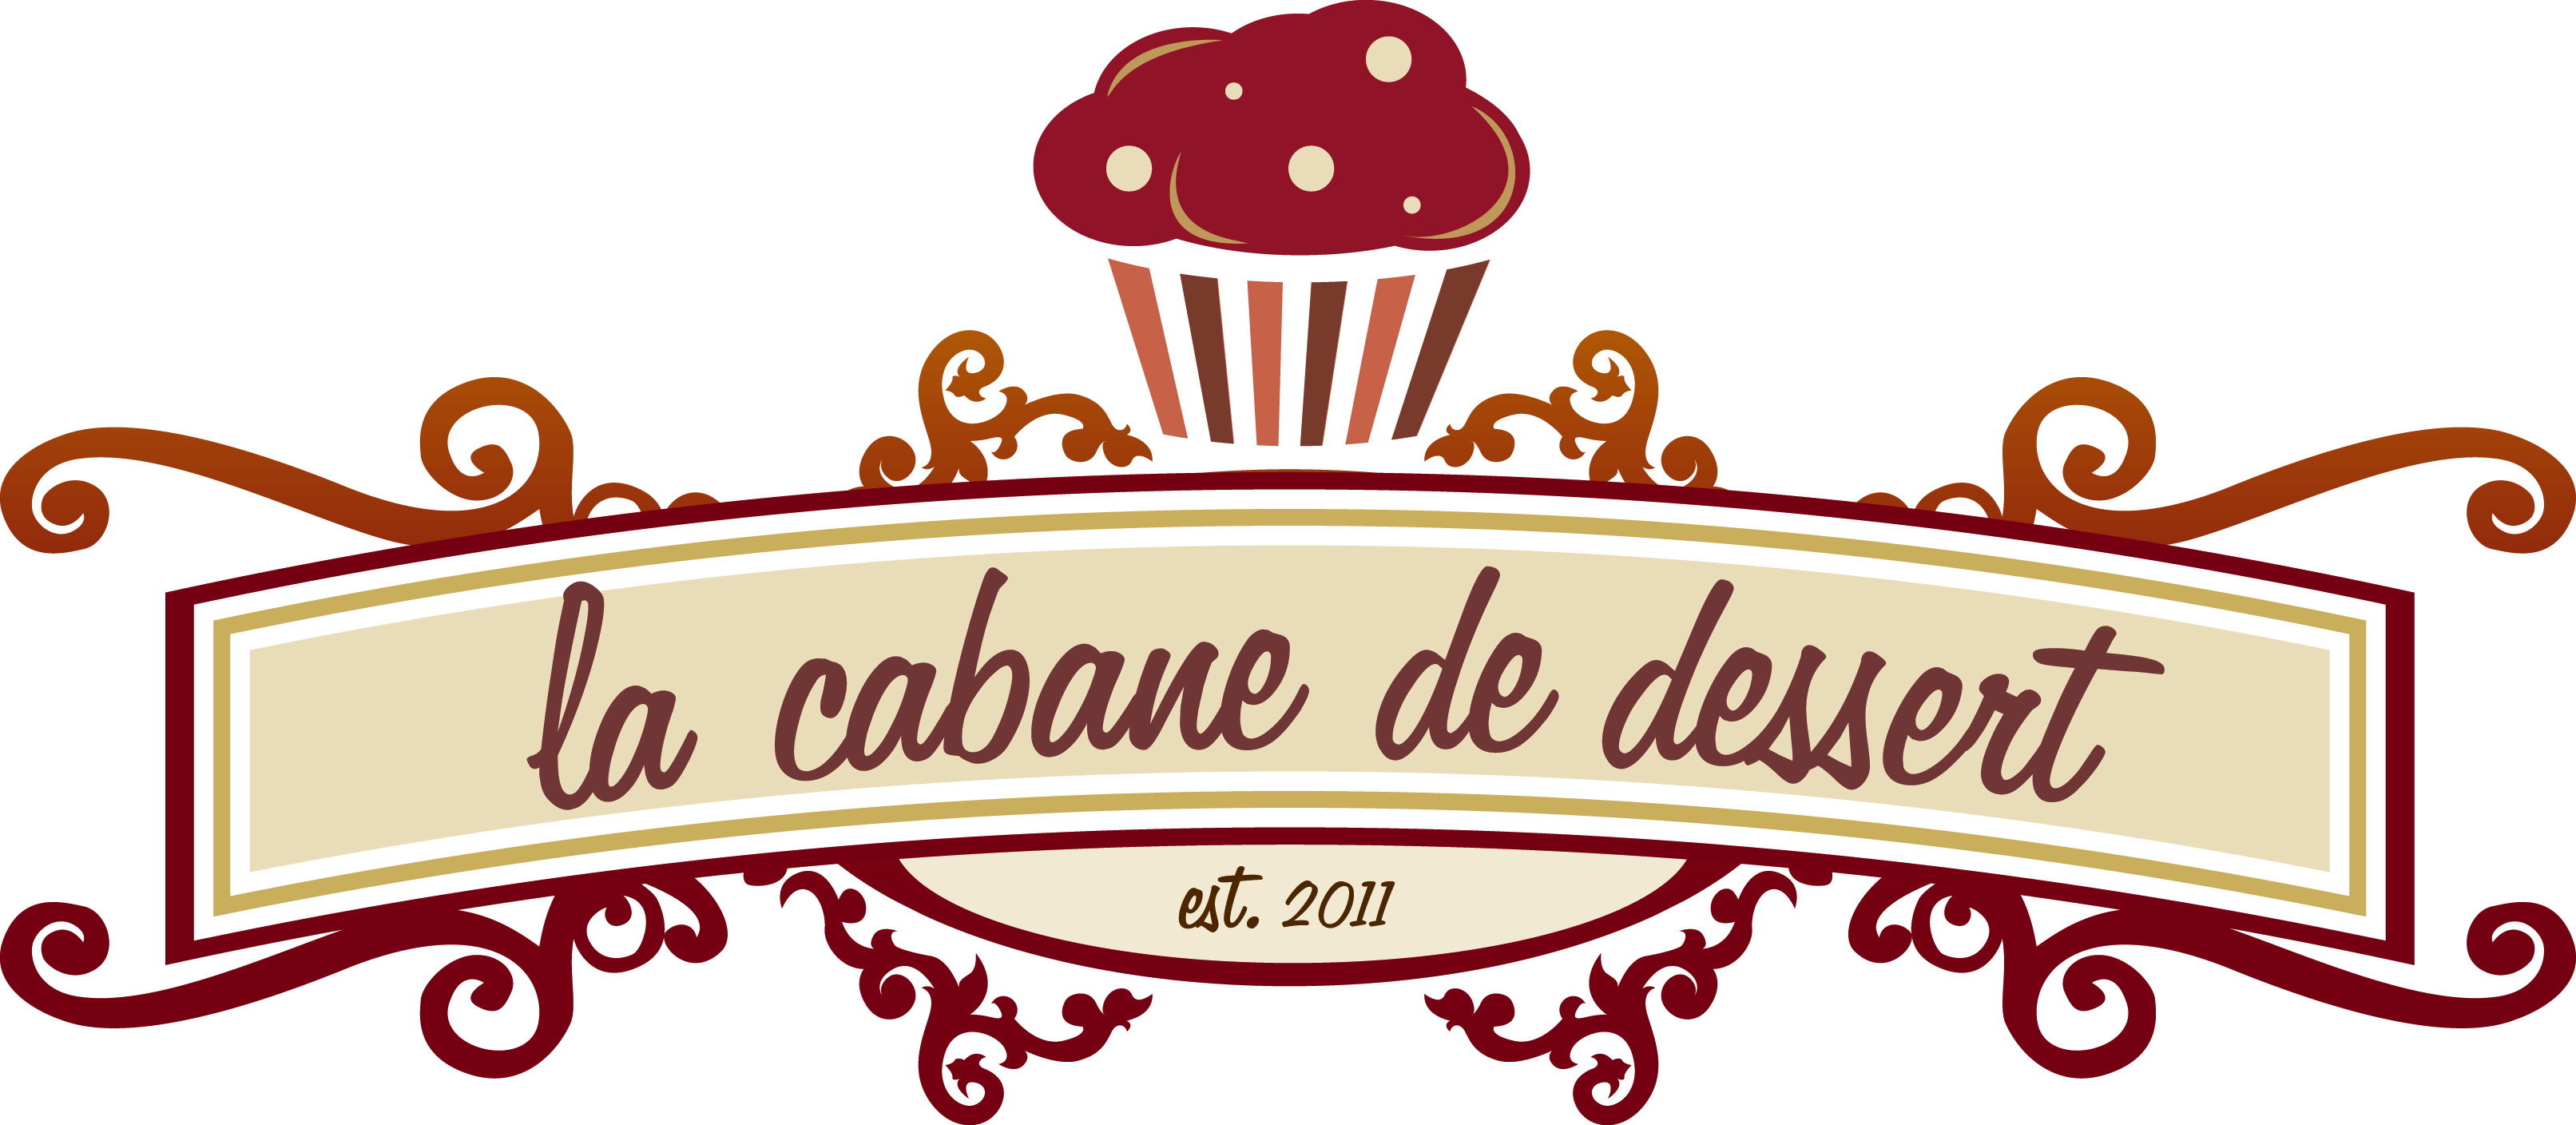 Bakery logo clipart graphic stock Free Pictures Of Bakeries, Download Free Clip Art, Free Clip Art on ... graphic stock